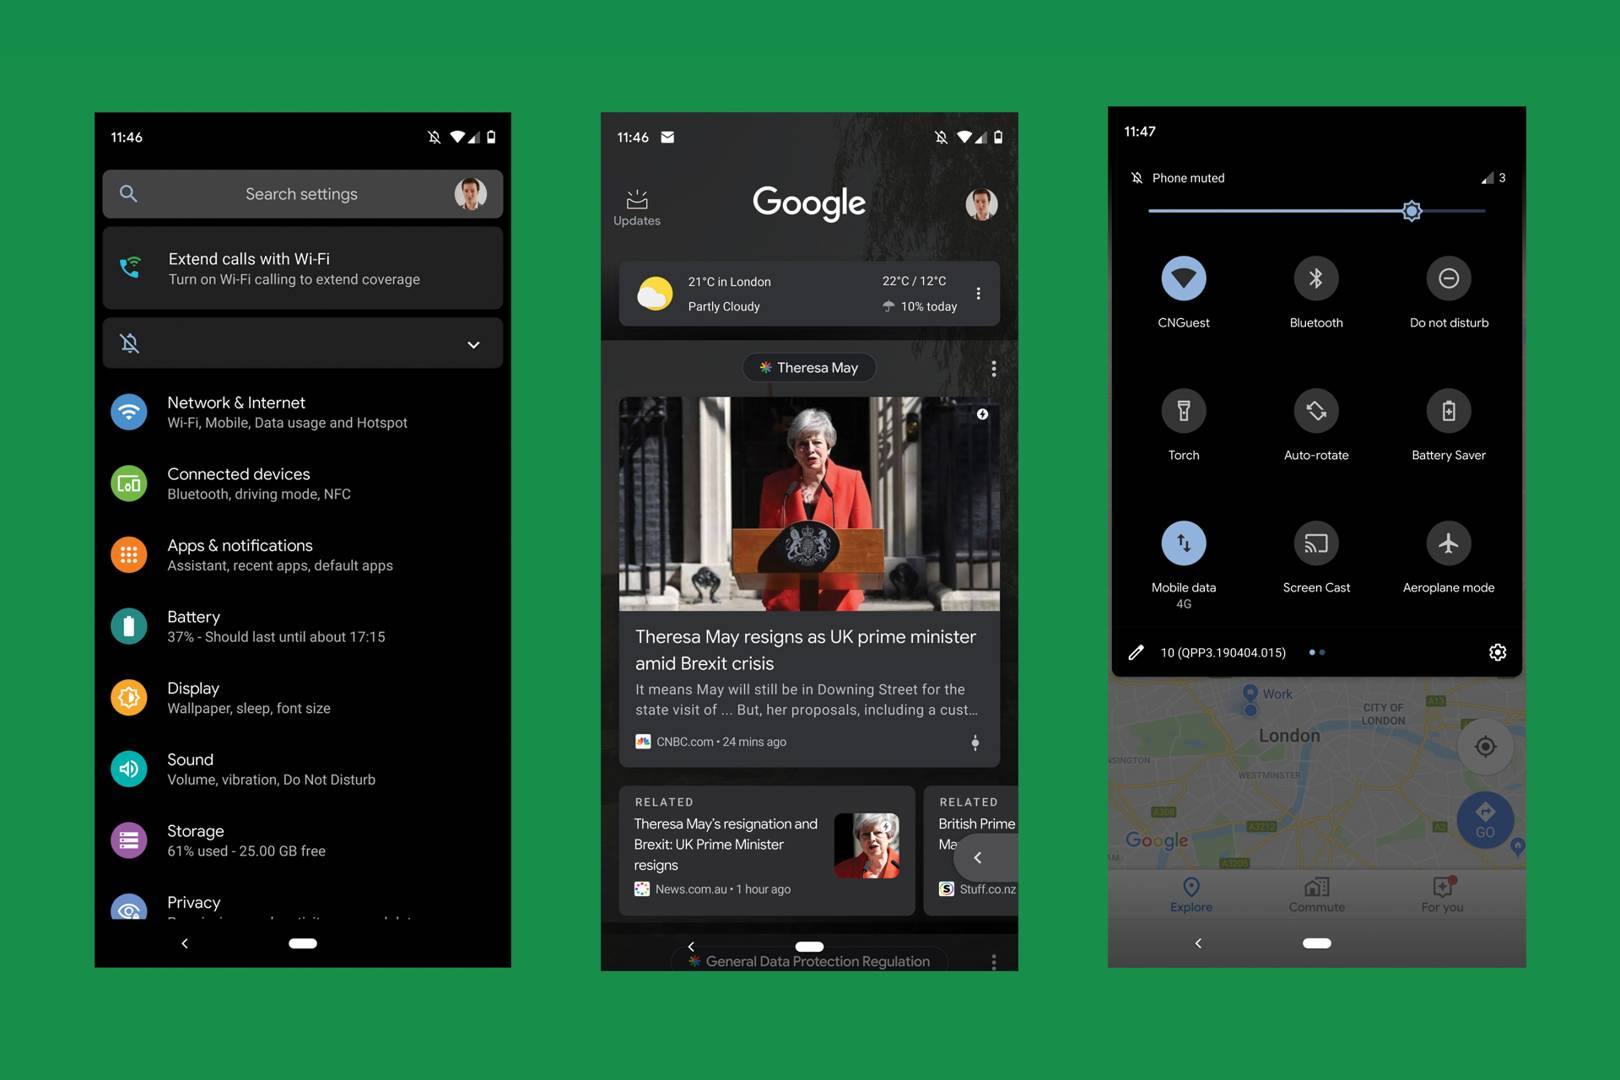 Android Q's dark mode is the best update Google has made for